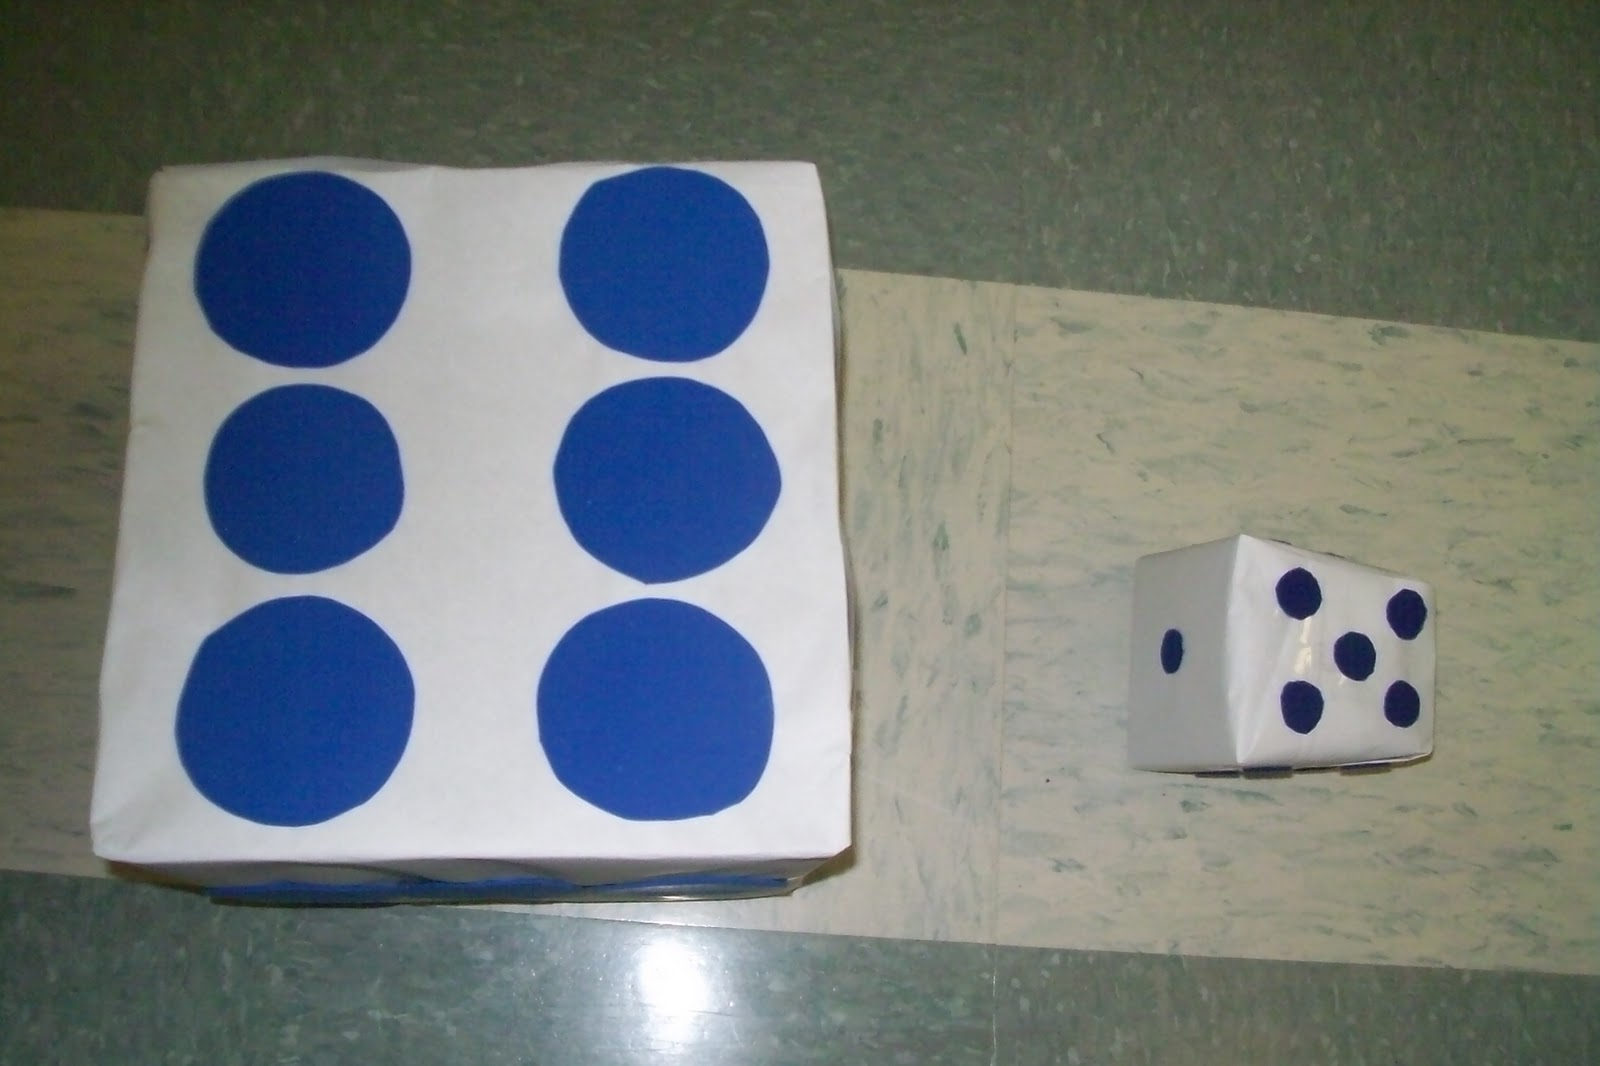 how to make a dice out of paper